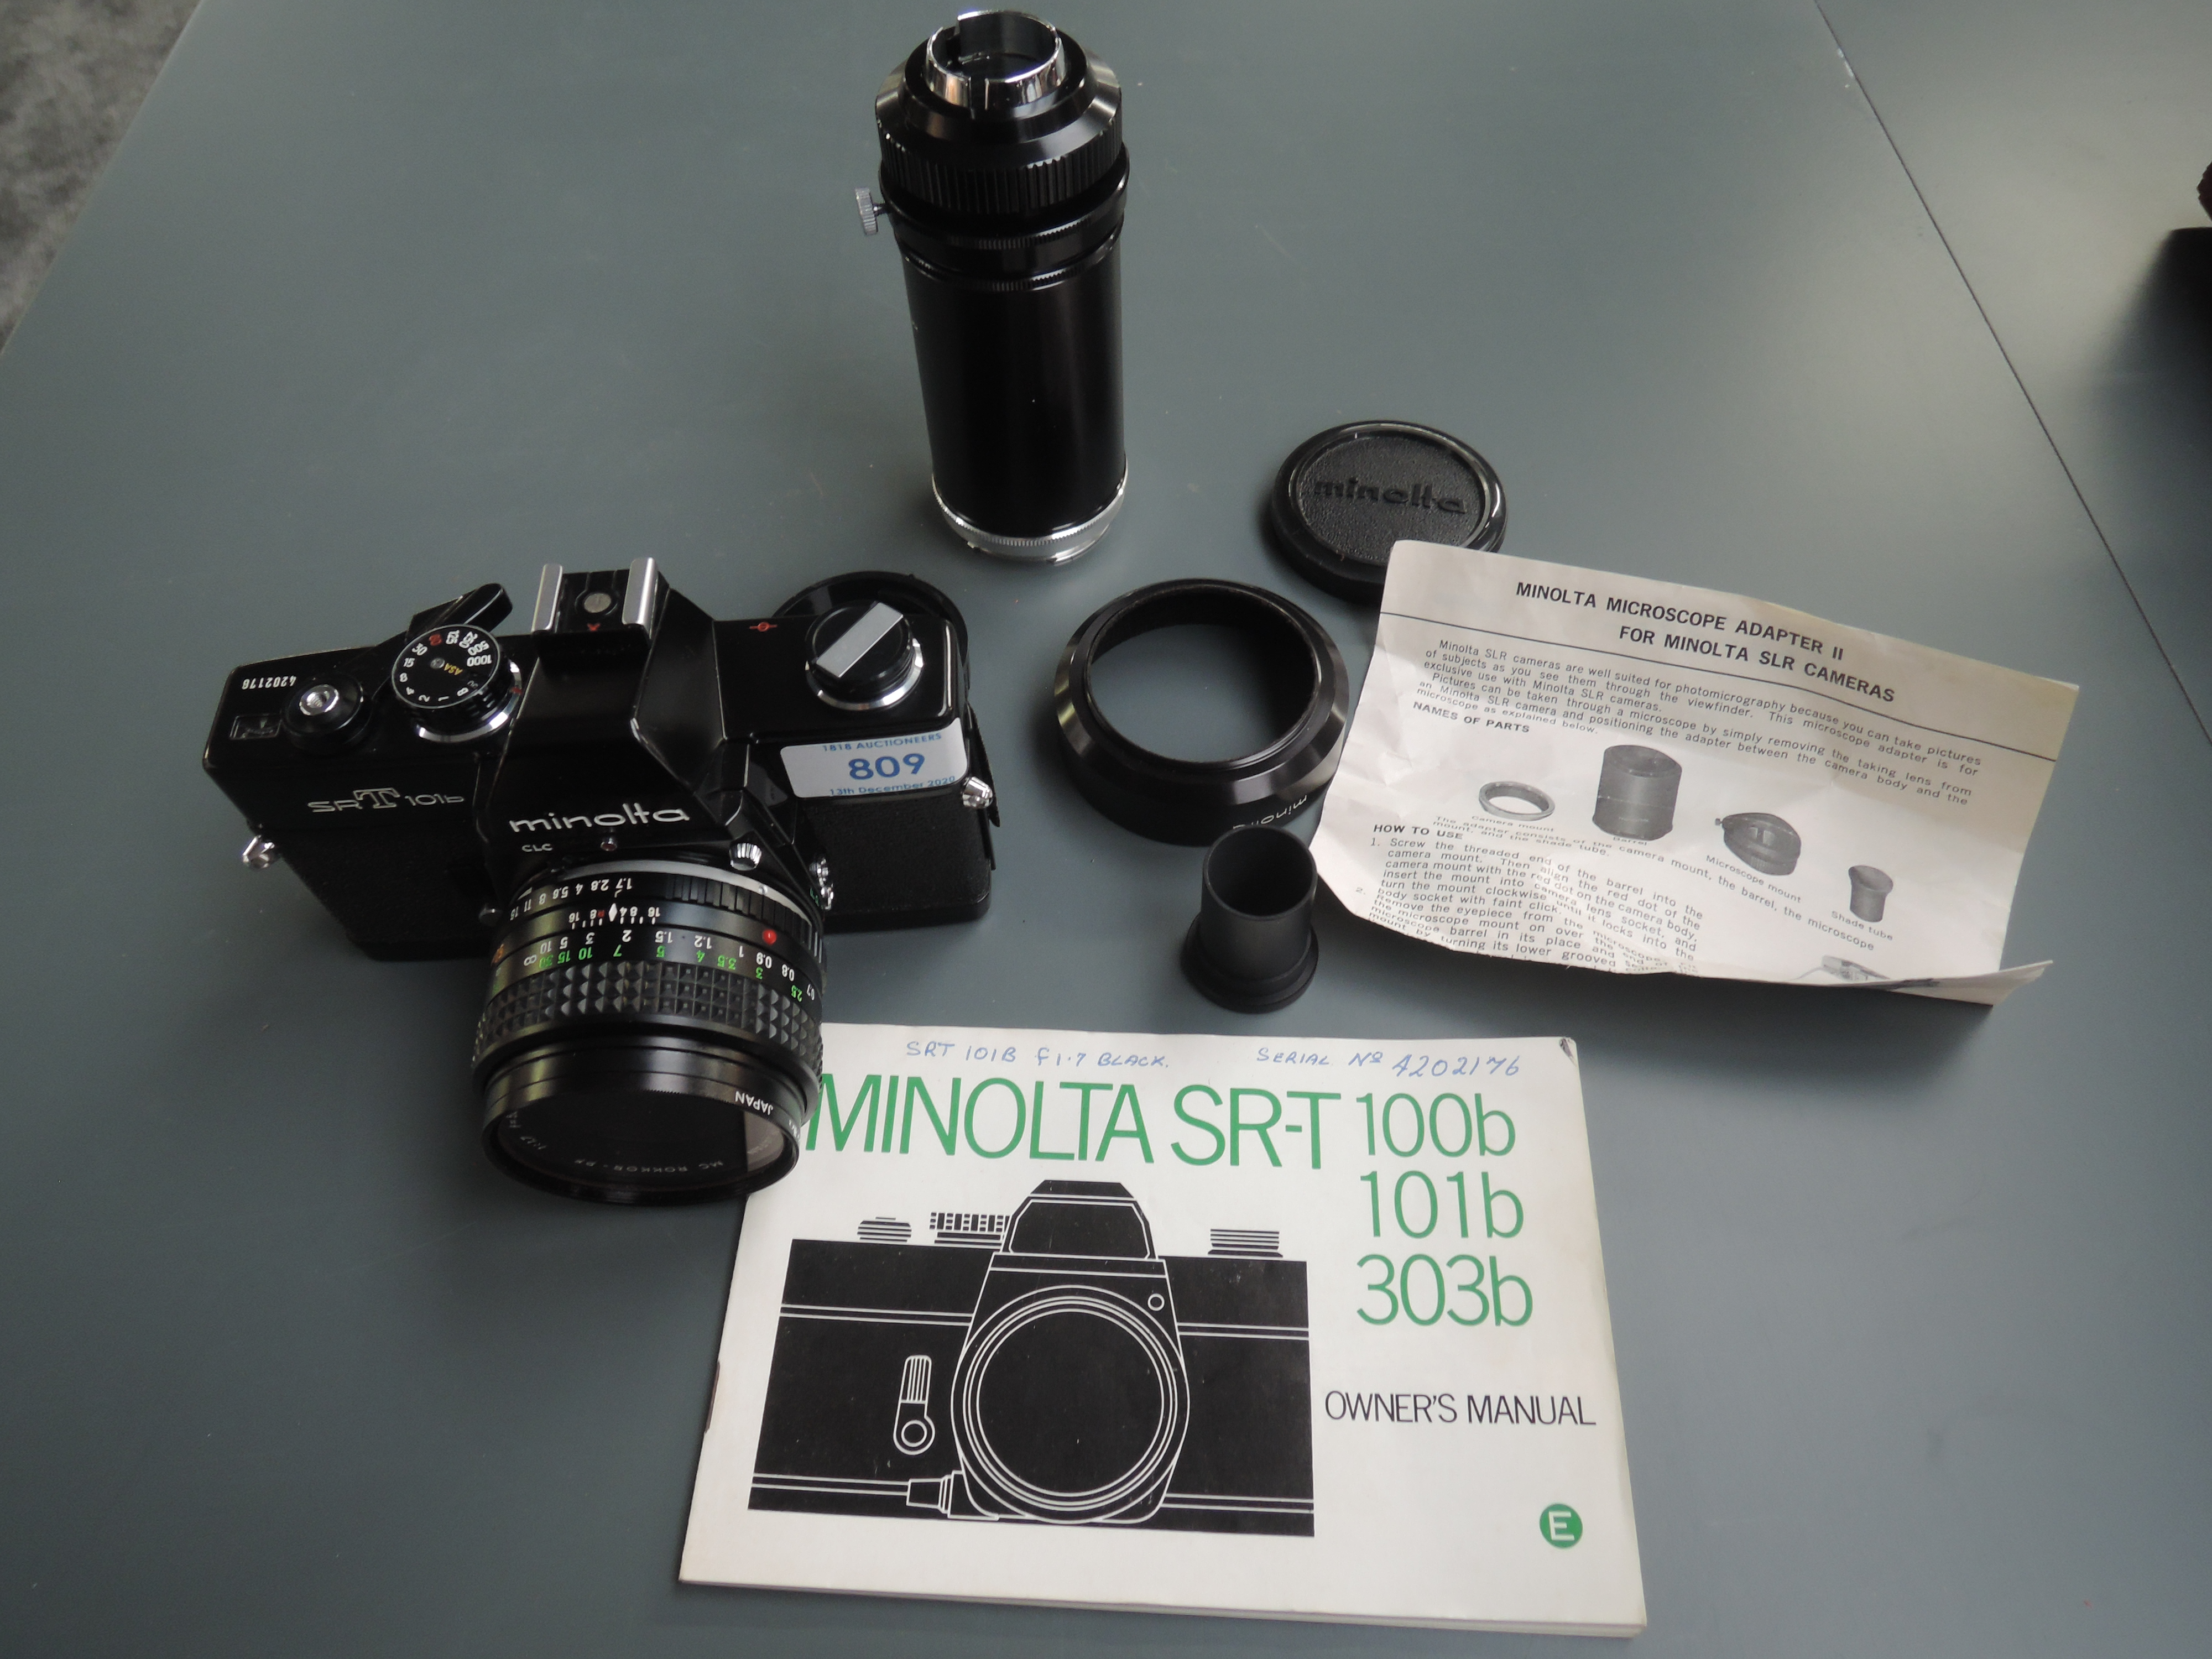 A Minolta SR T 101b camera with users manual - Image 3 of 3